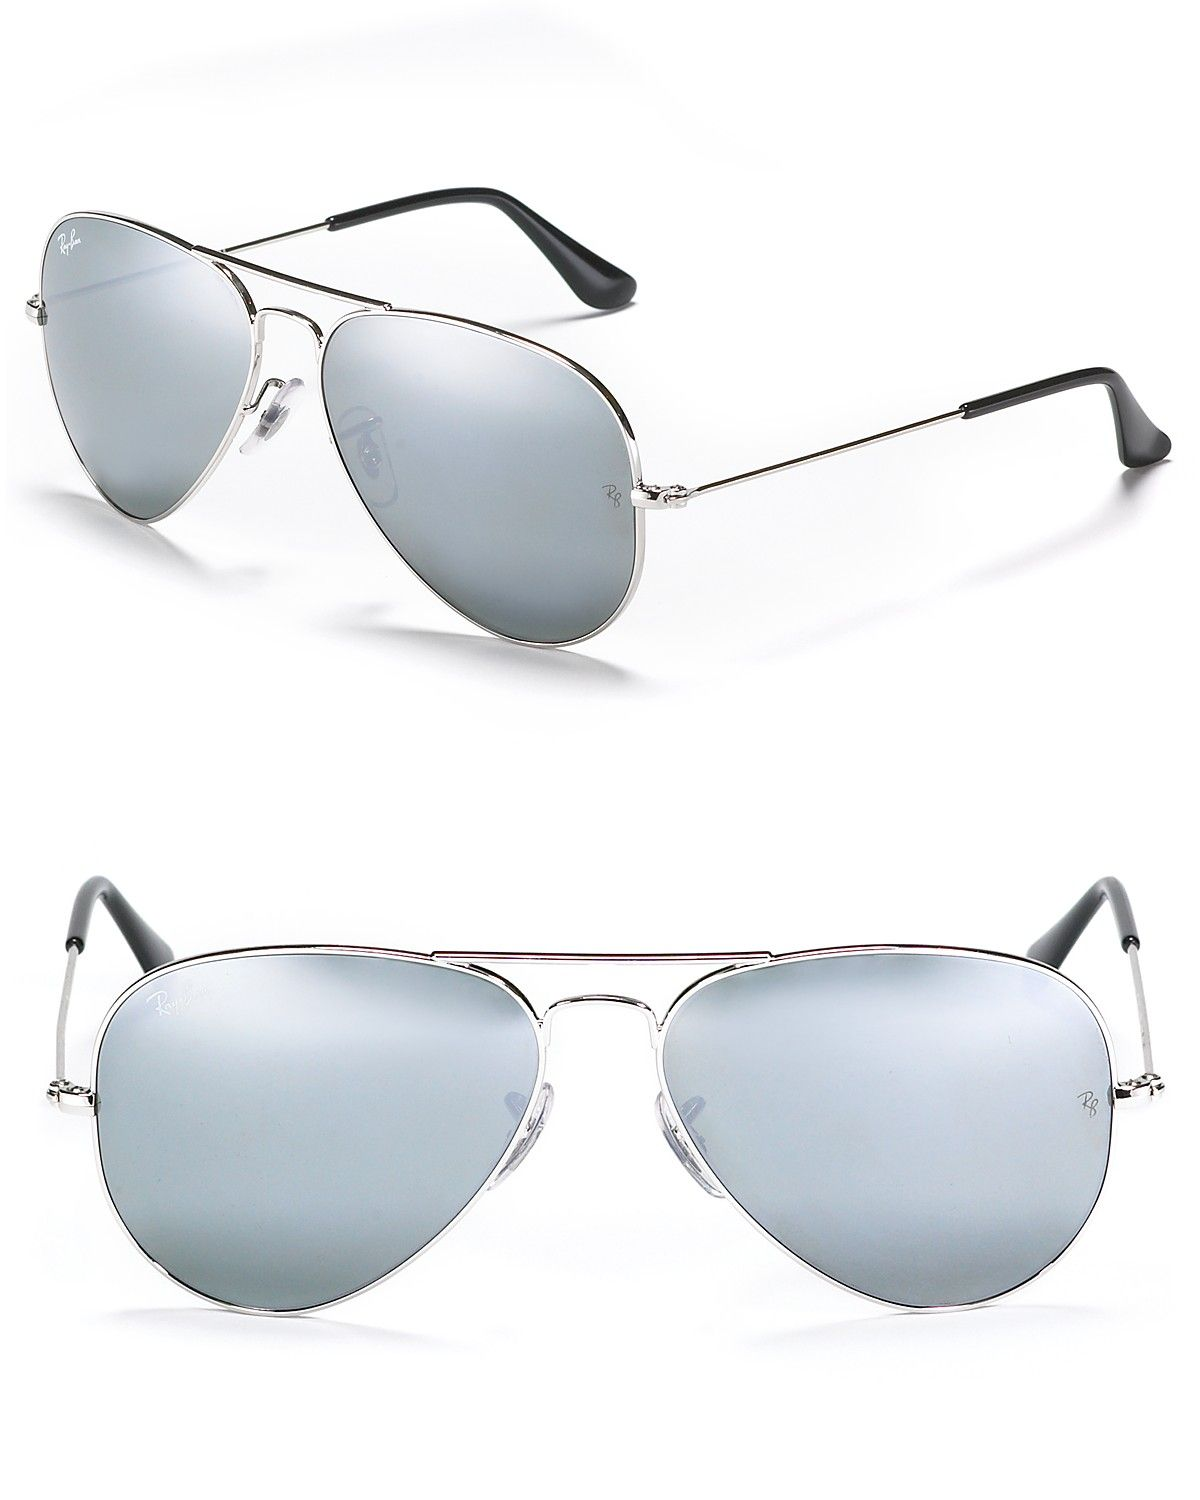 ray ban mirrored polarized sunglasses  17 best images about frames and glasses on pinterest